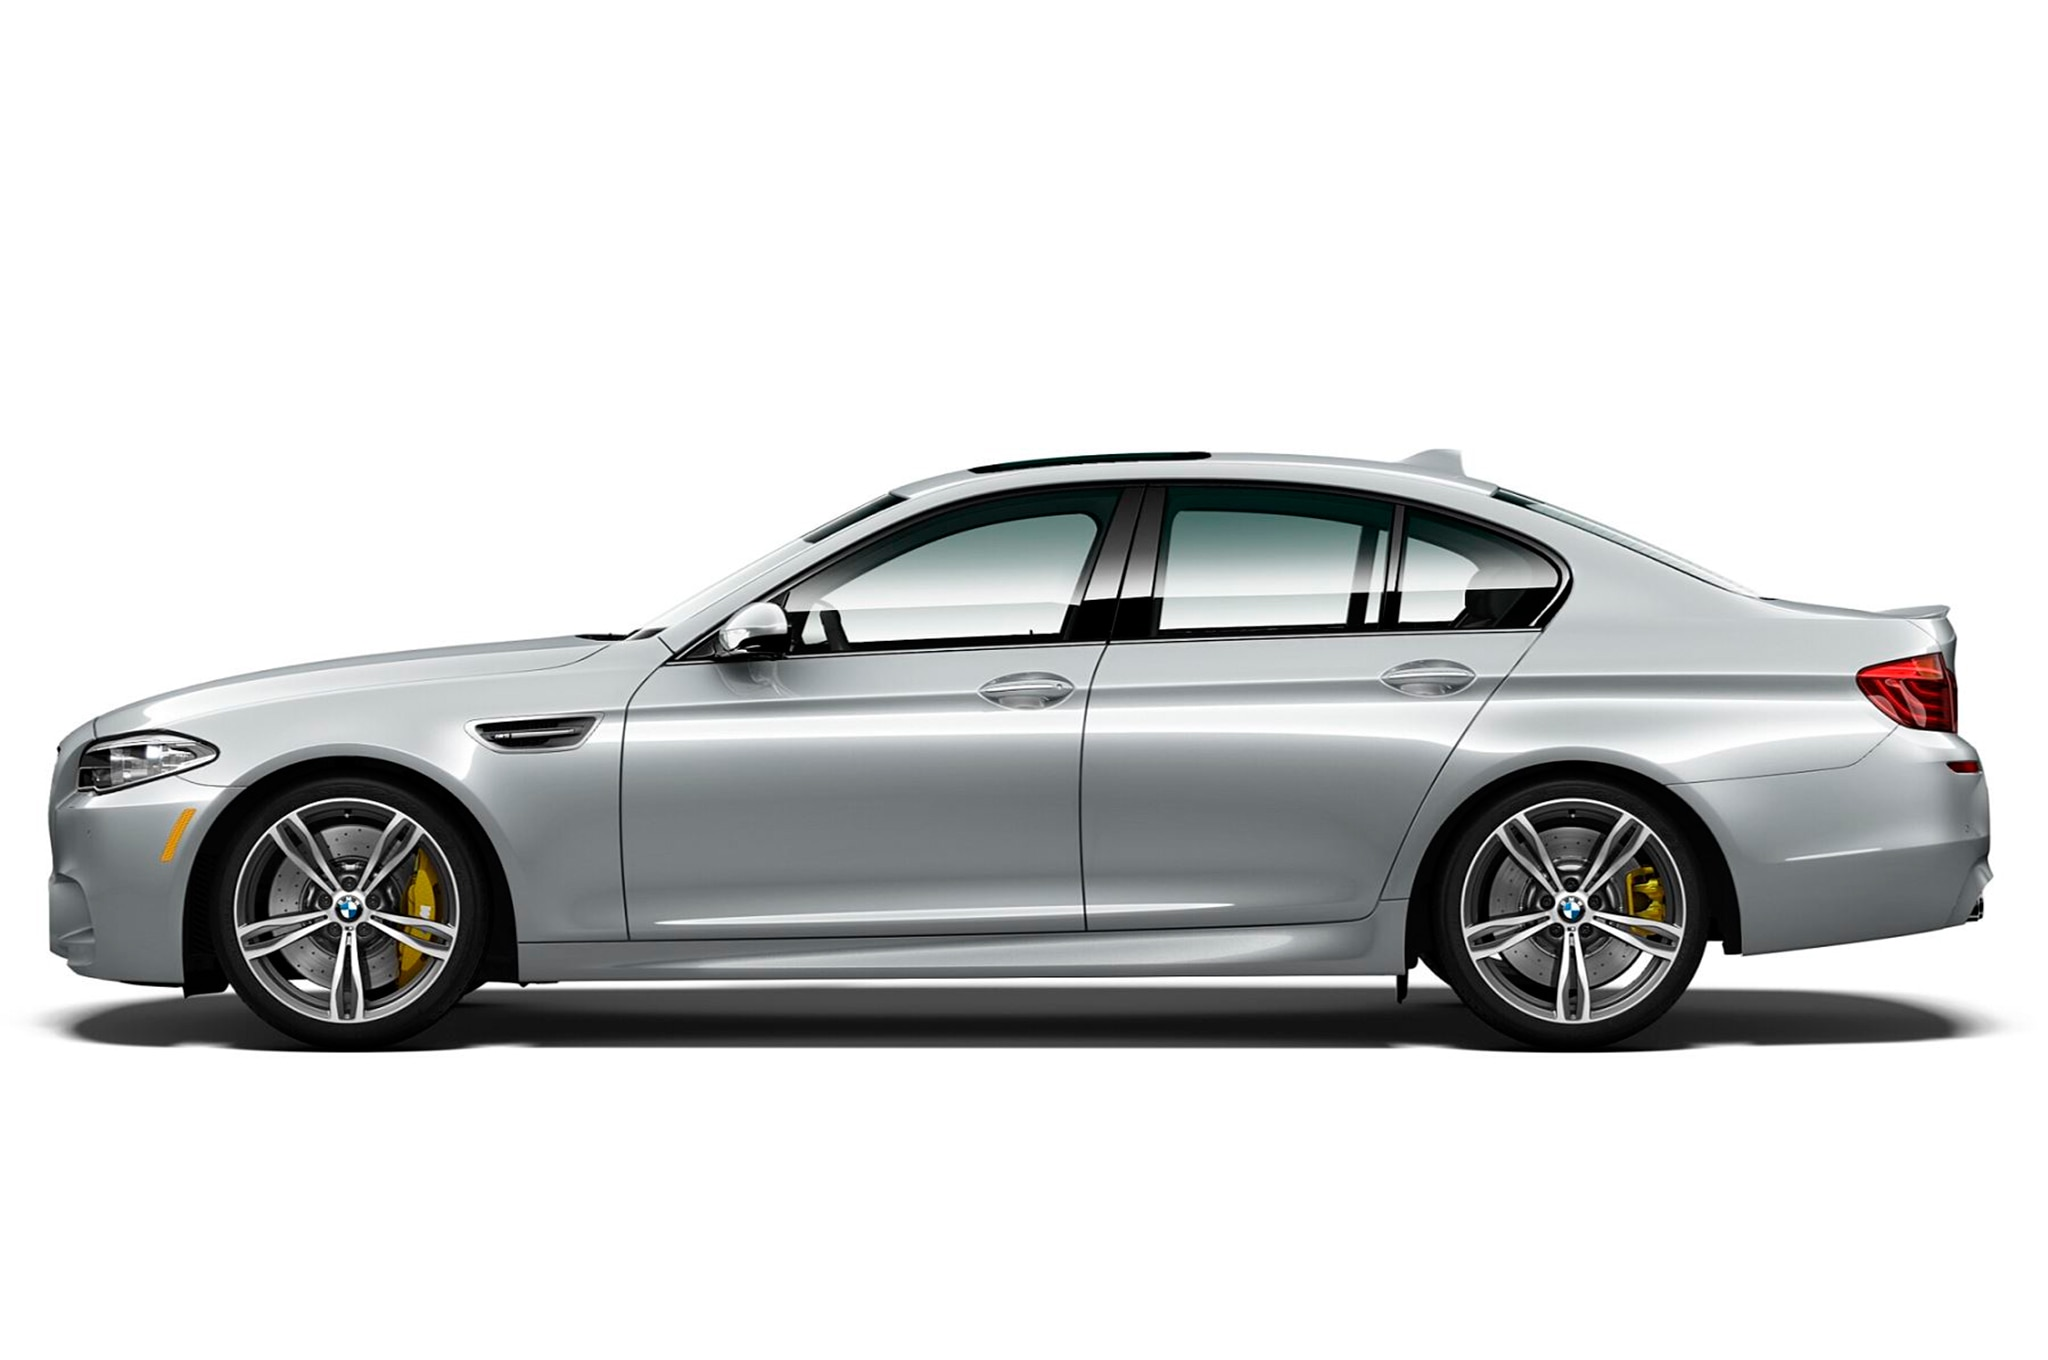 2016 BMW M5 Pure Metal Silver Limited Edition side profile